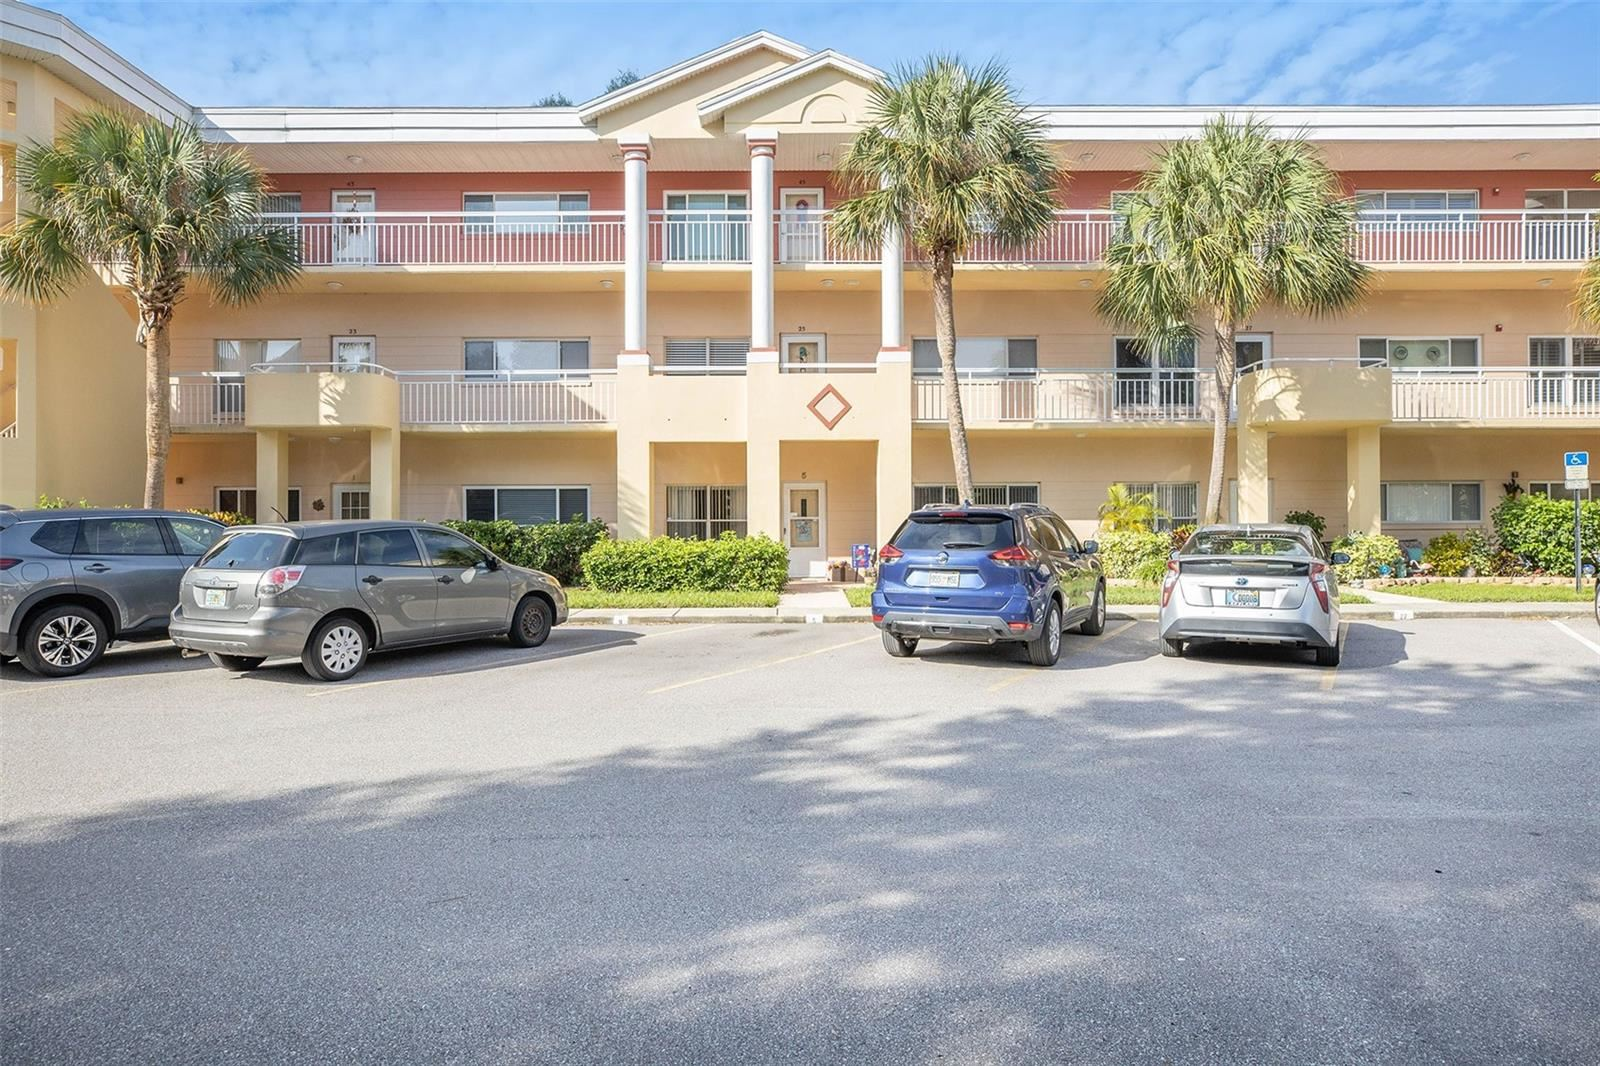 2022 CAMELOT DRIVE #25, Clearwater, FL 33763 - MLS#: T3329269